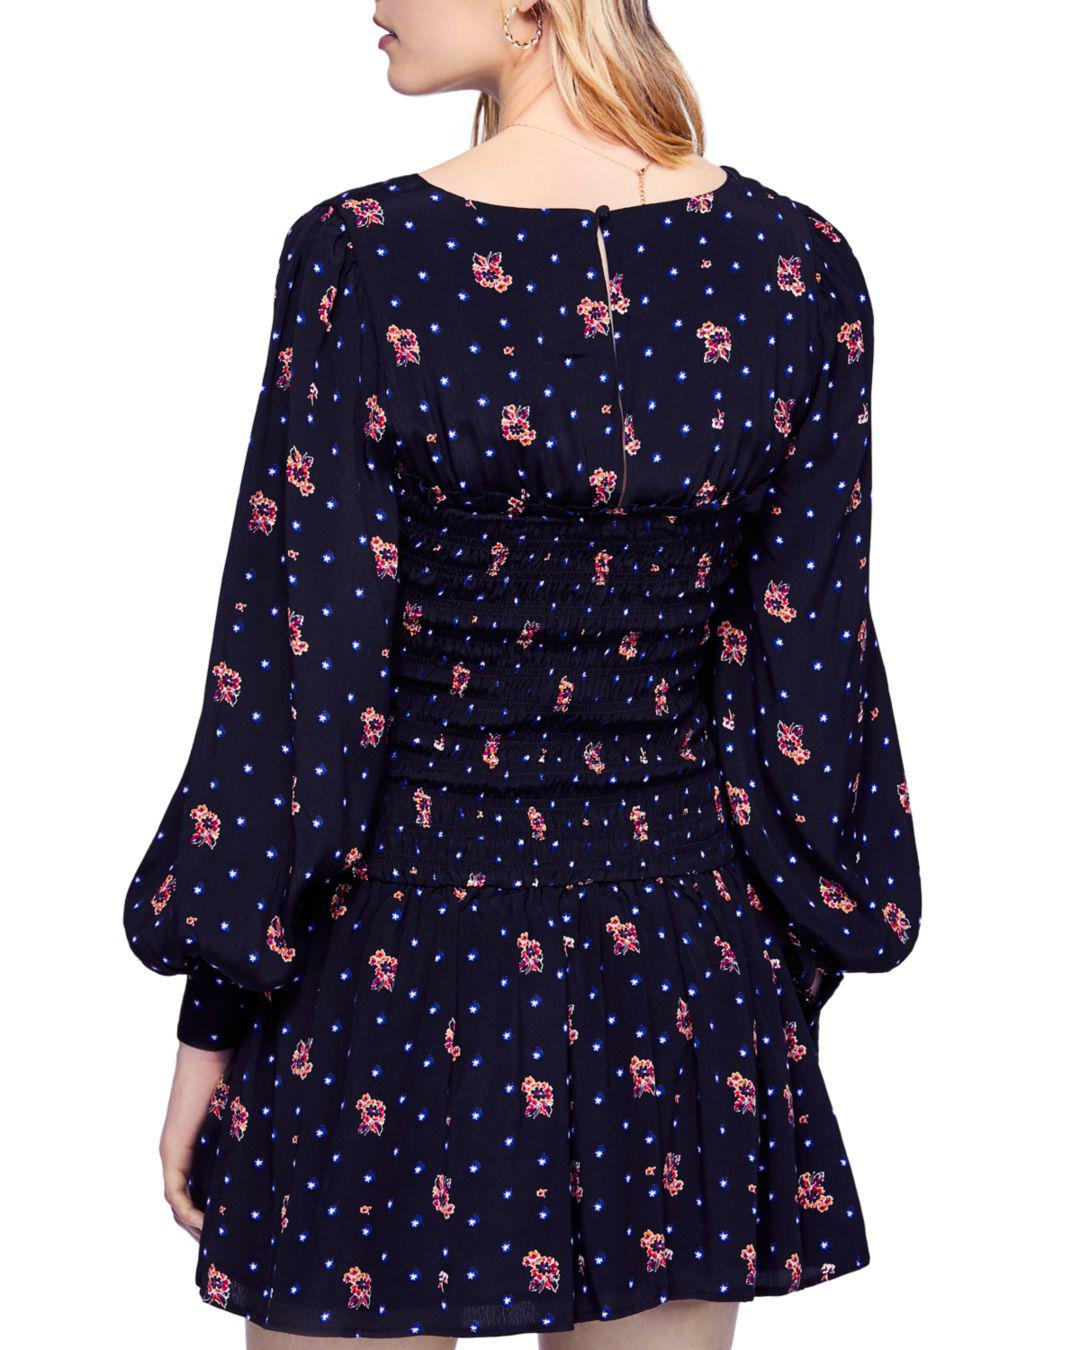 Free People Two Faces Smocked Dress in Black - Lyst